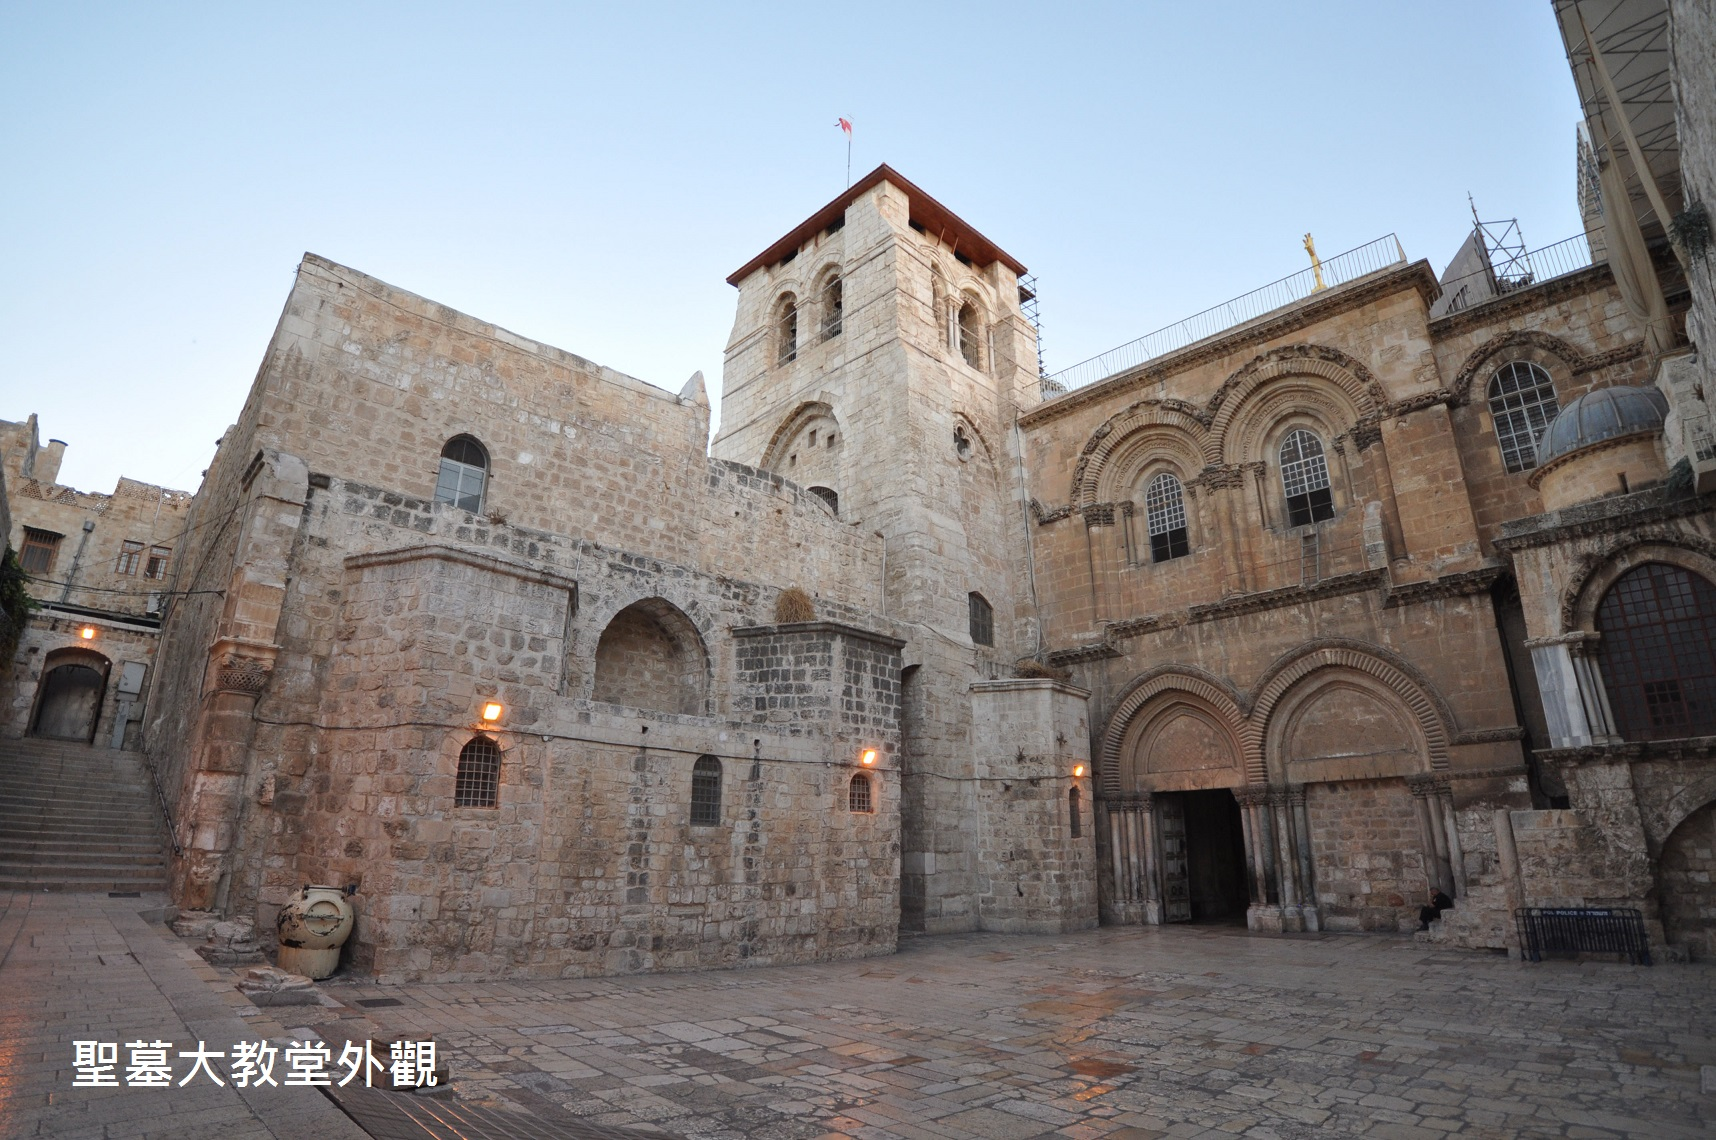 pic-1-church_of_the_holy_sepulchre-jerusalem-r40